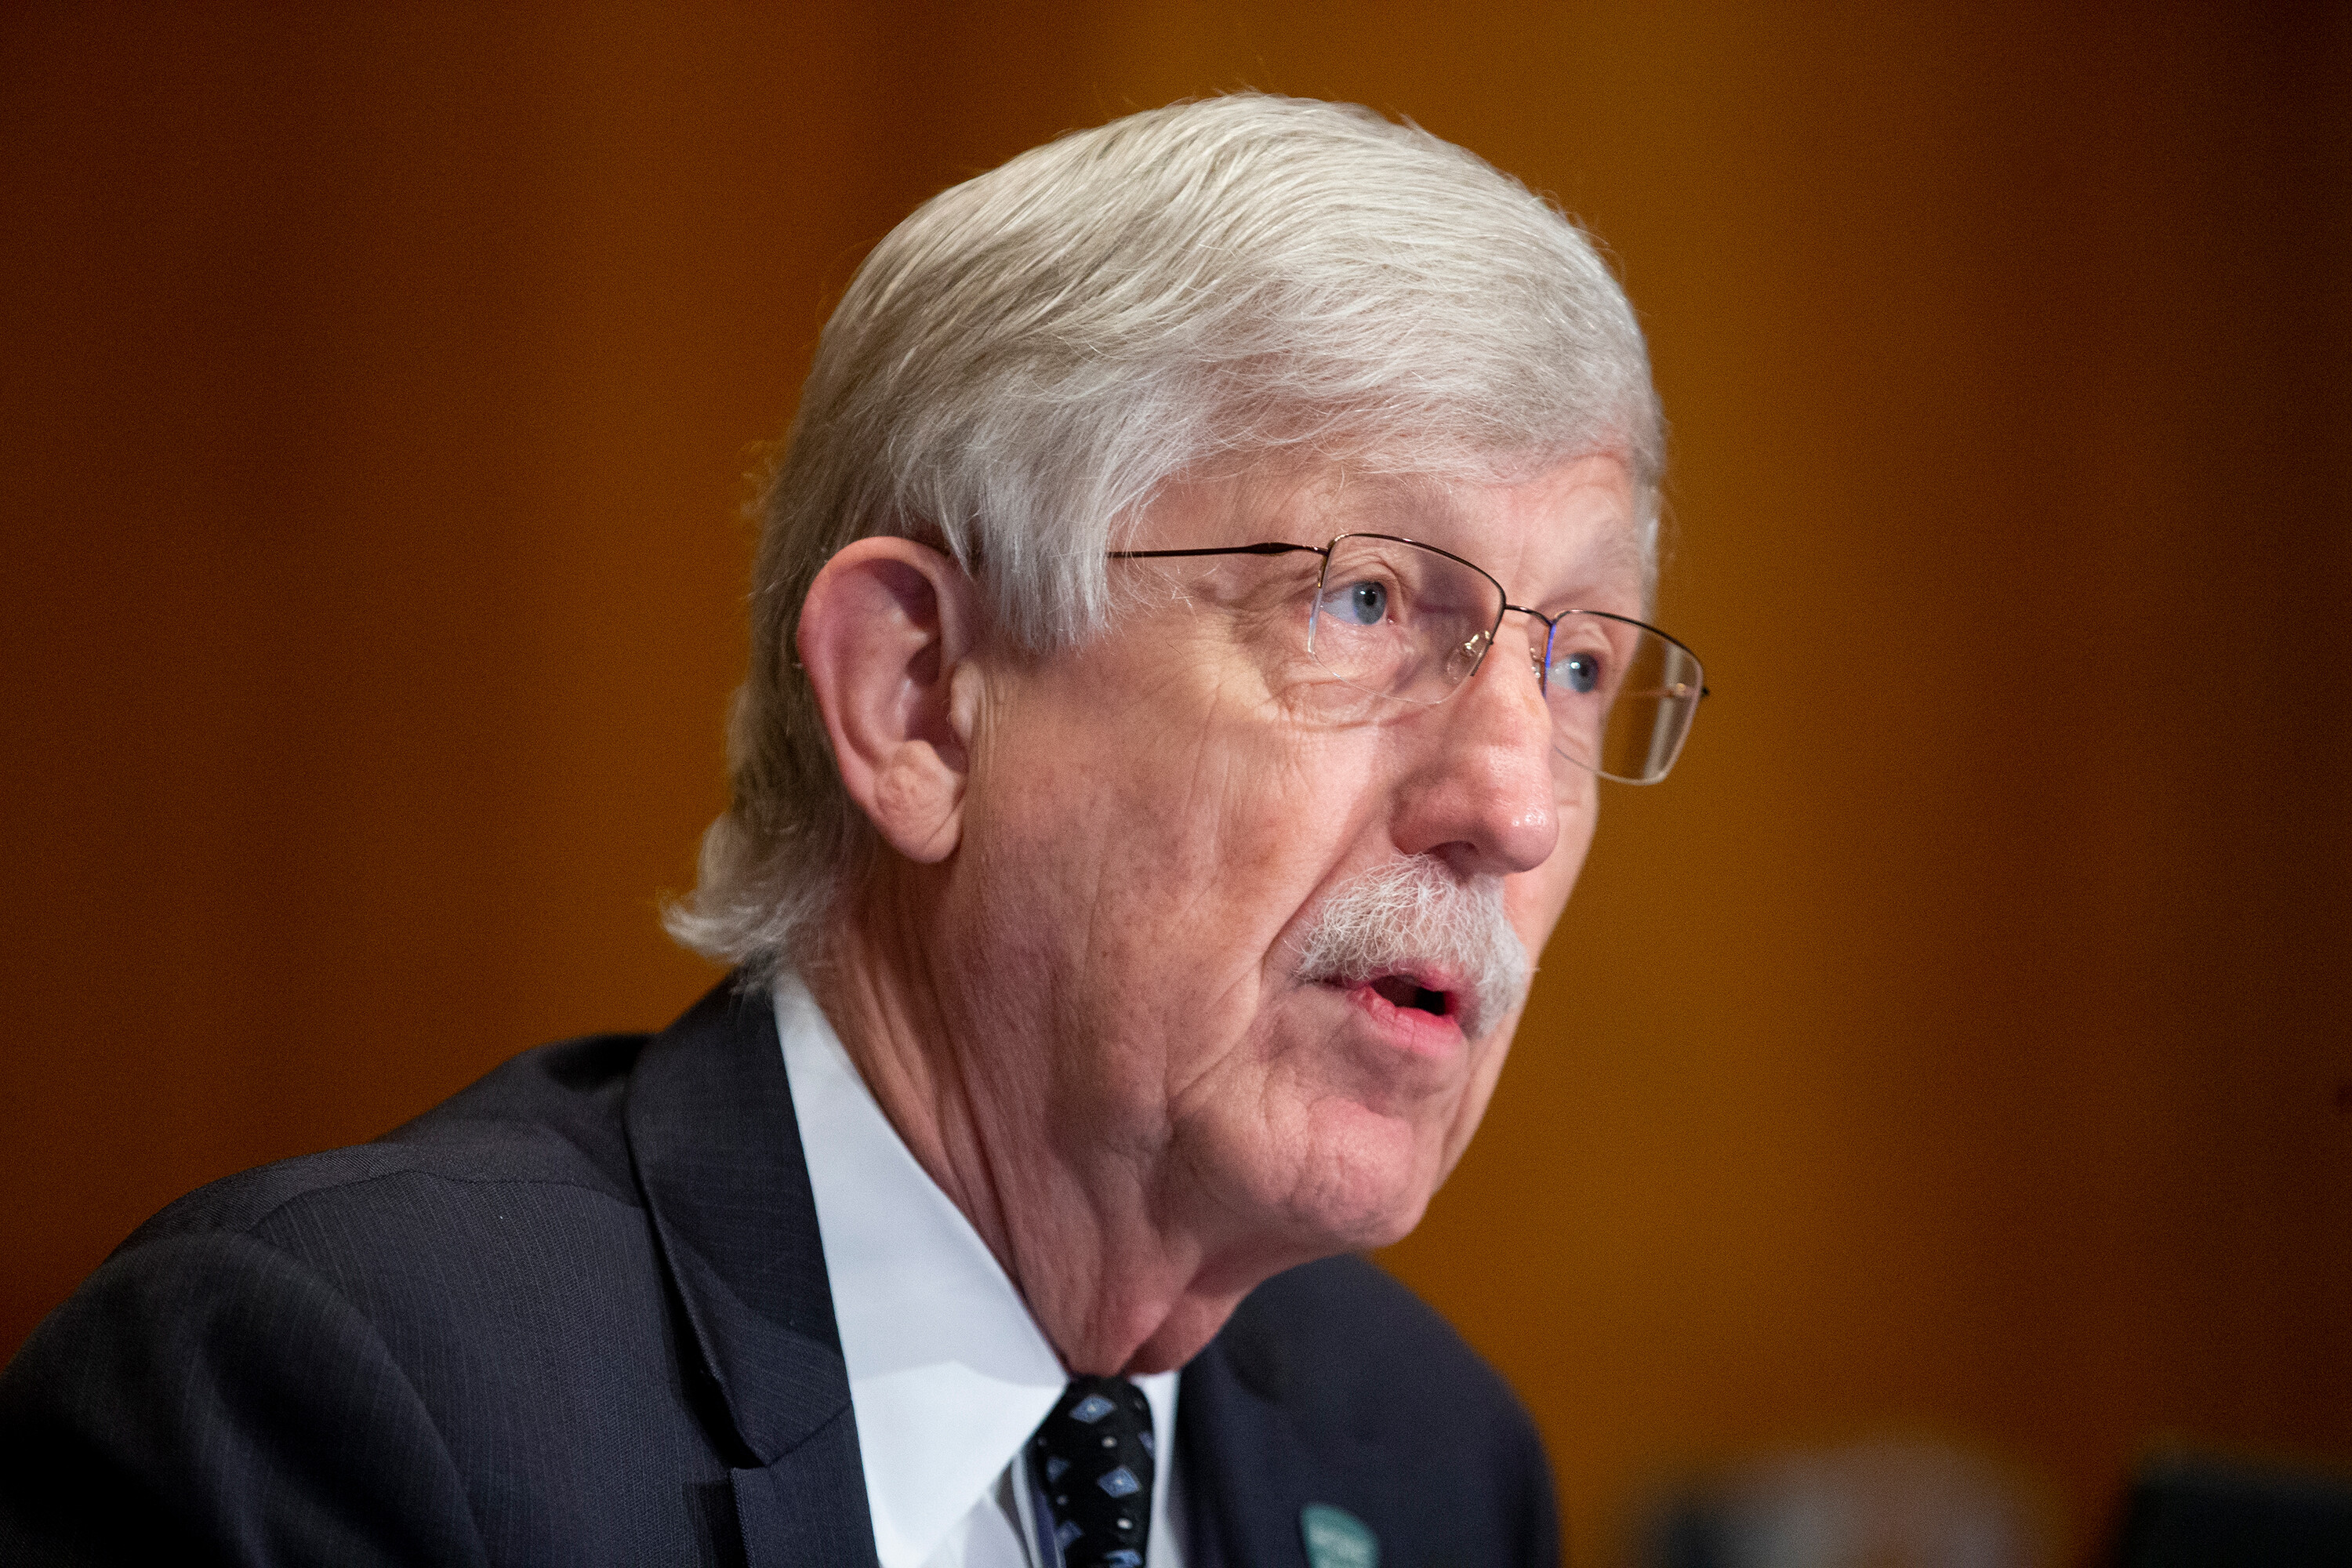 Dr. Francis Collins to step down as head of NIH